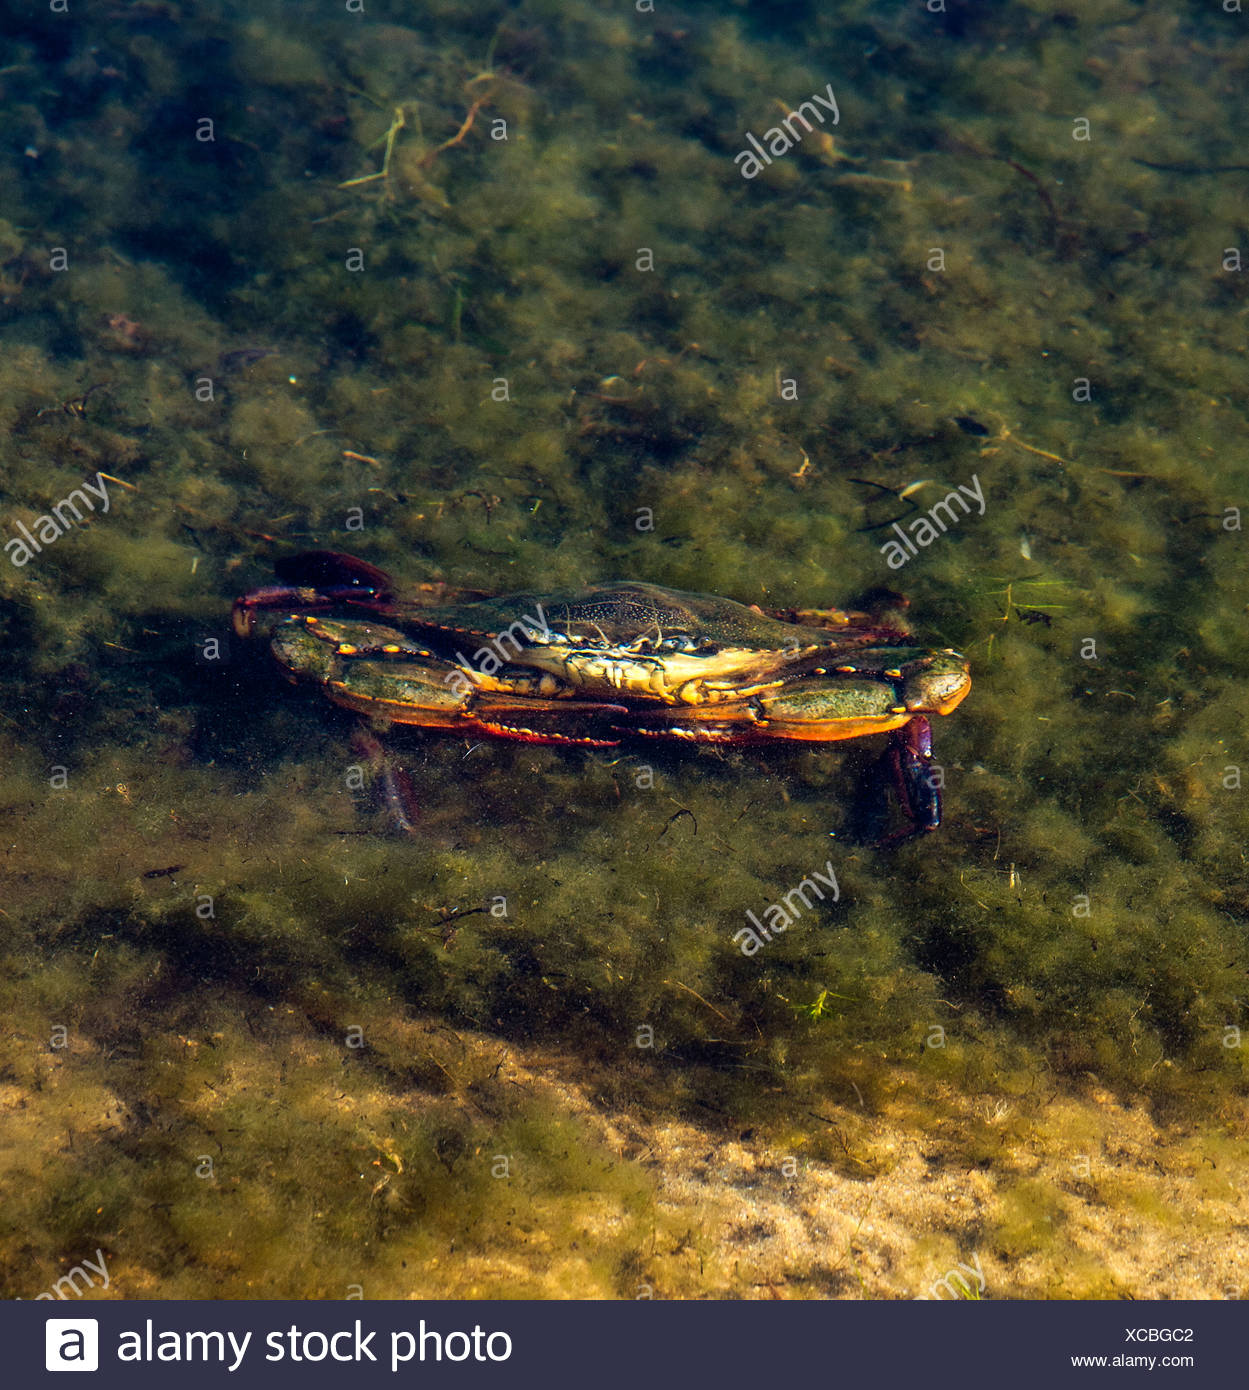 Live crab in shallow water. - Stock Image